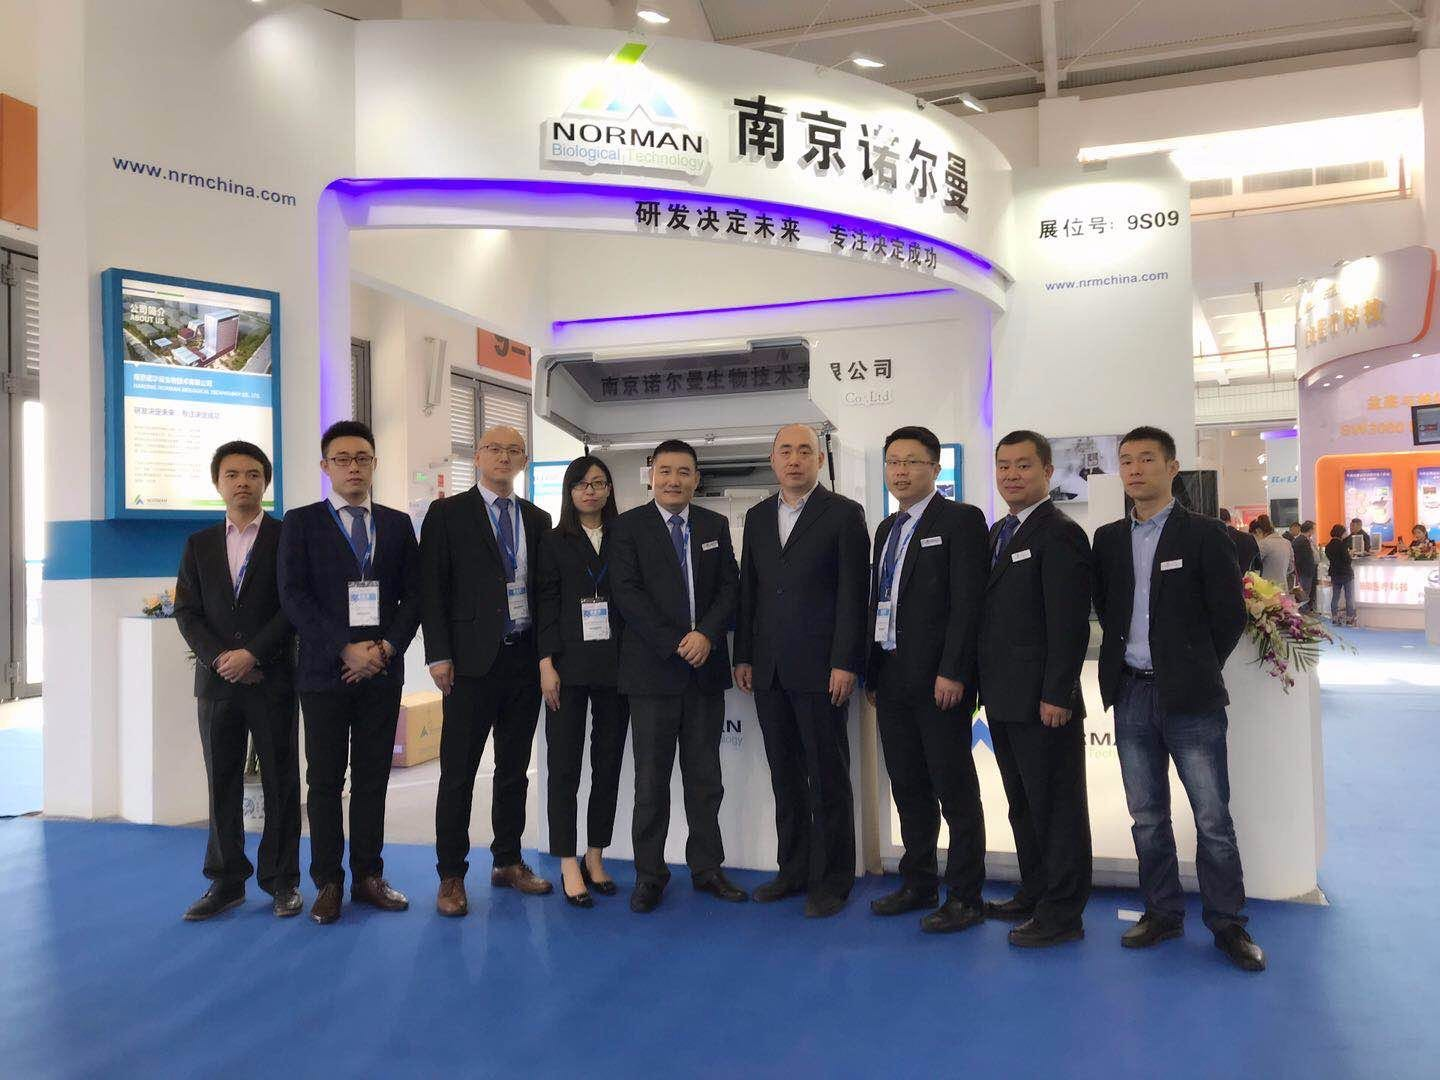 Norman Attended Cmef In Shenzheng